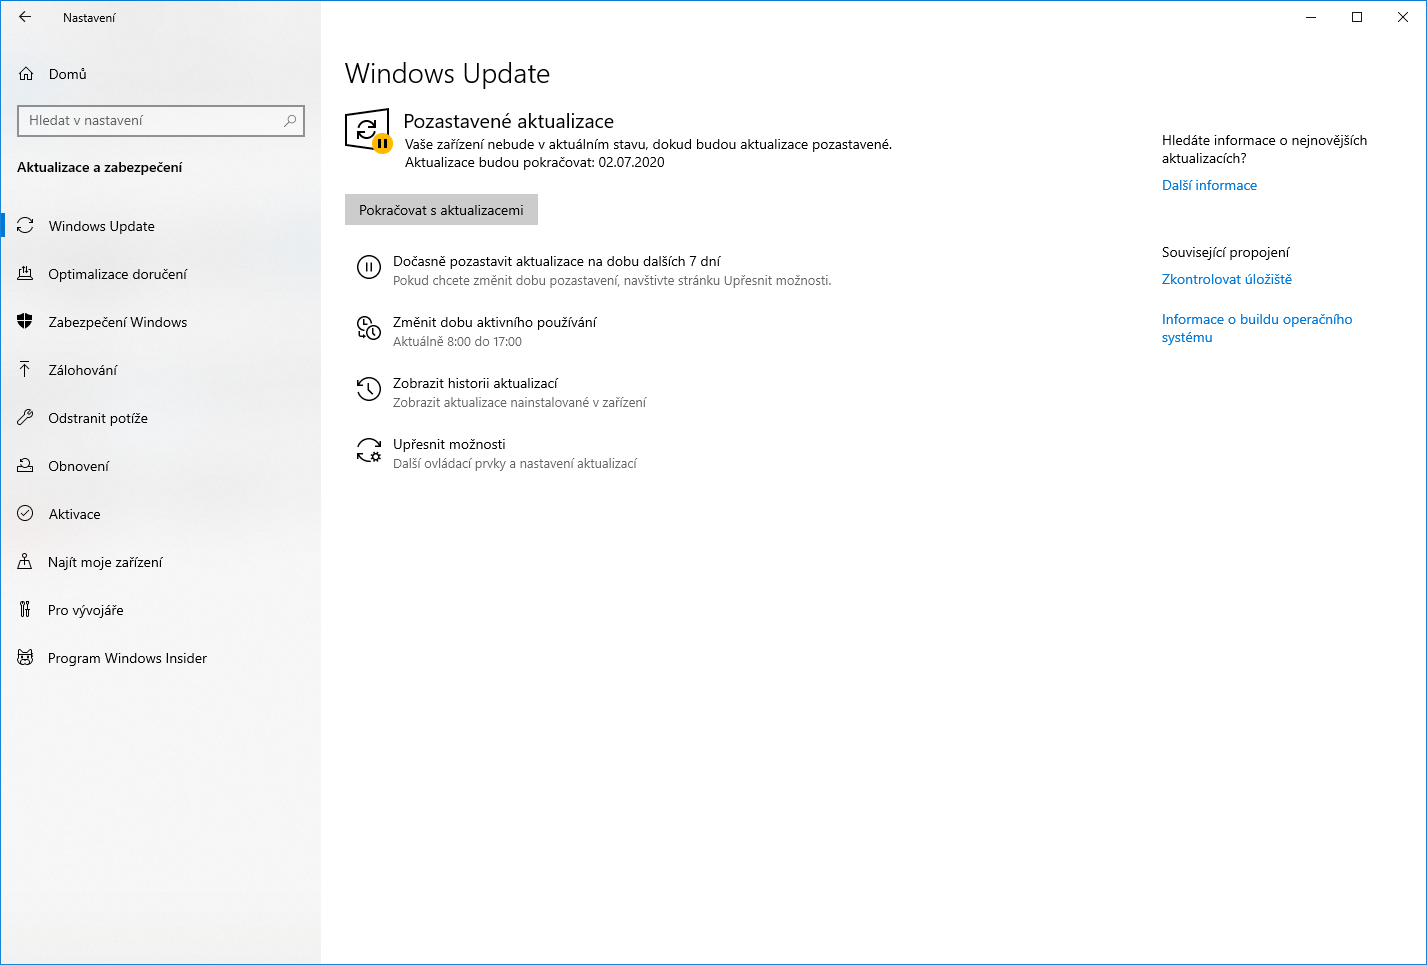 windows 10 pozastaveni aktualizace upgrady 6